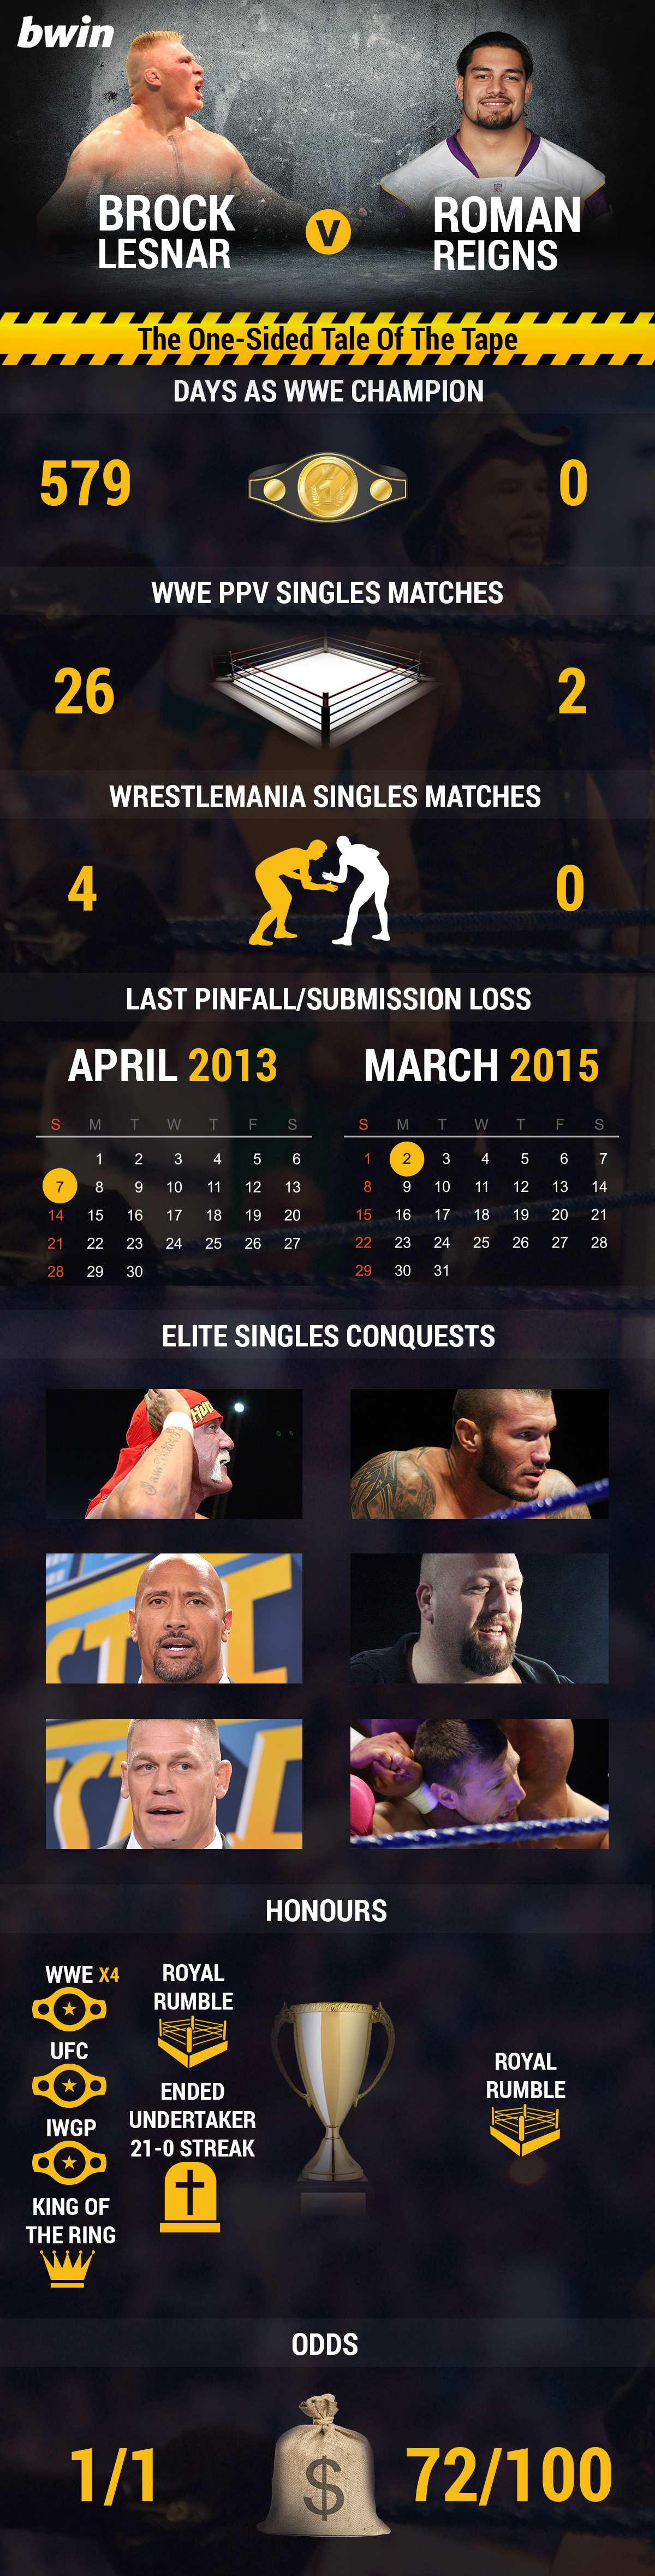 WWE WrestleMania Brock Lesnar v Roman Reigns Tale of the Tape